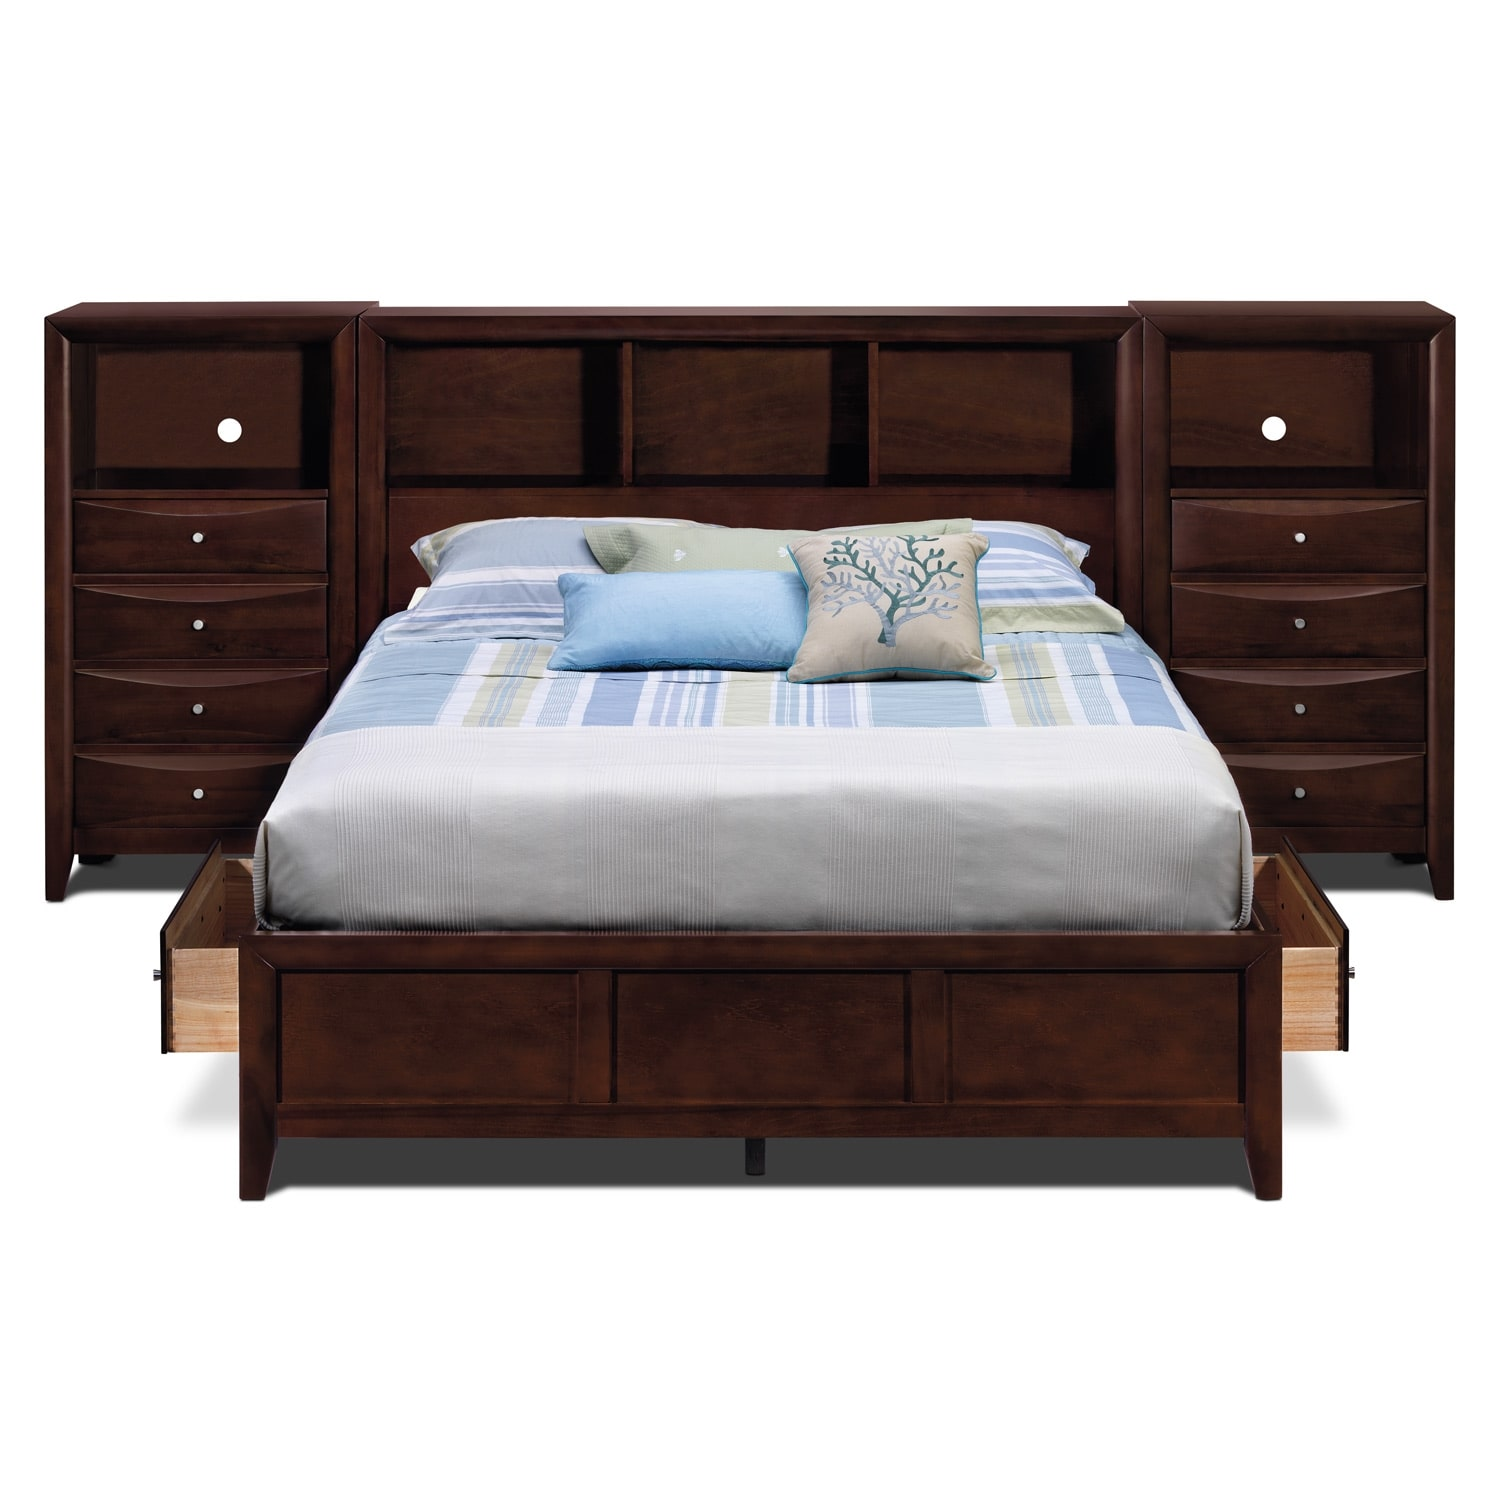 Clarion Bedroom Queen Wall Bed With Piers Value City Furniture